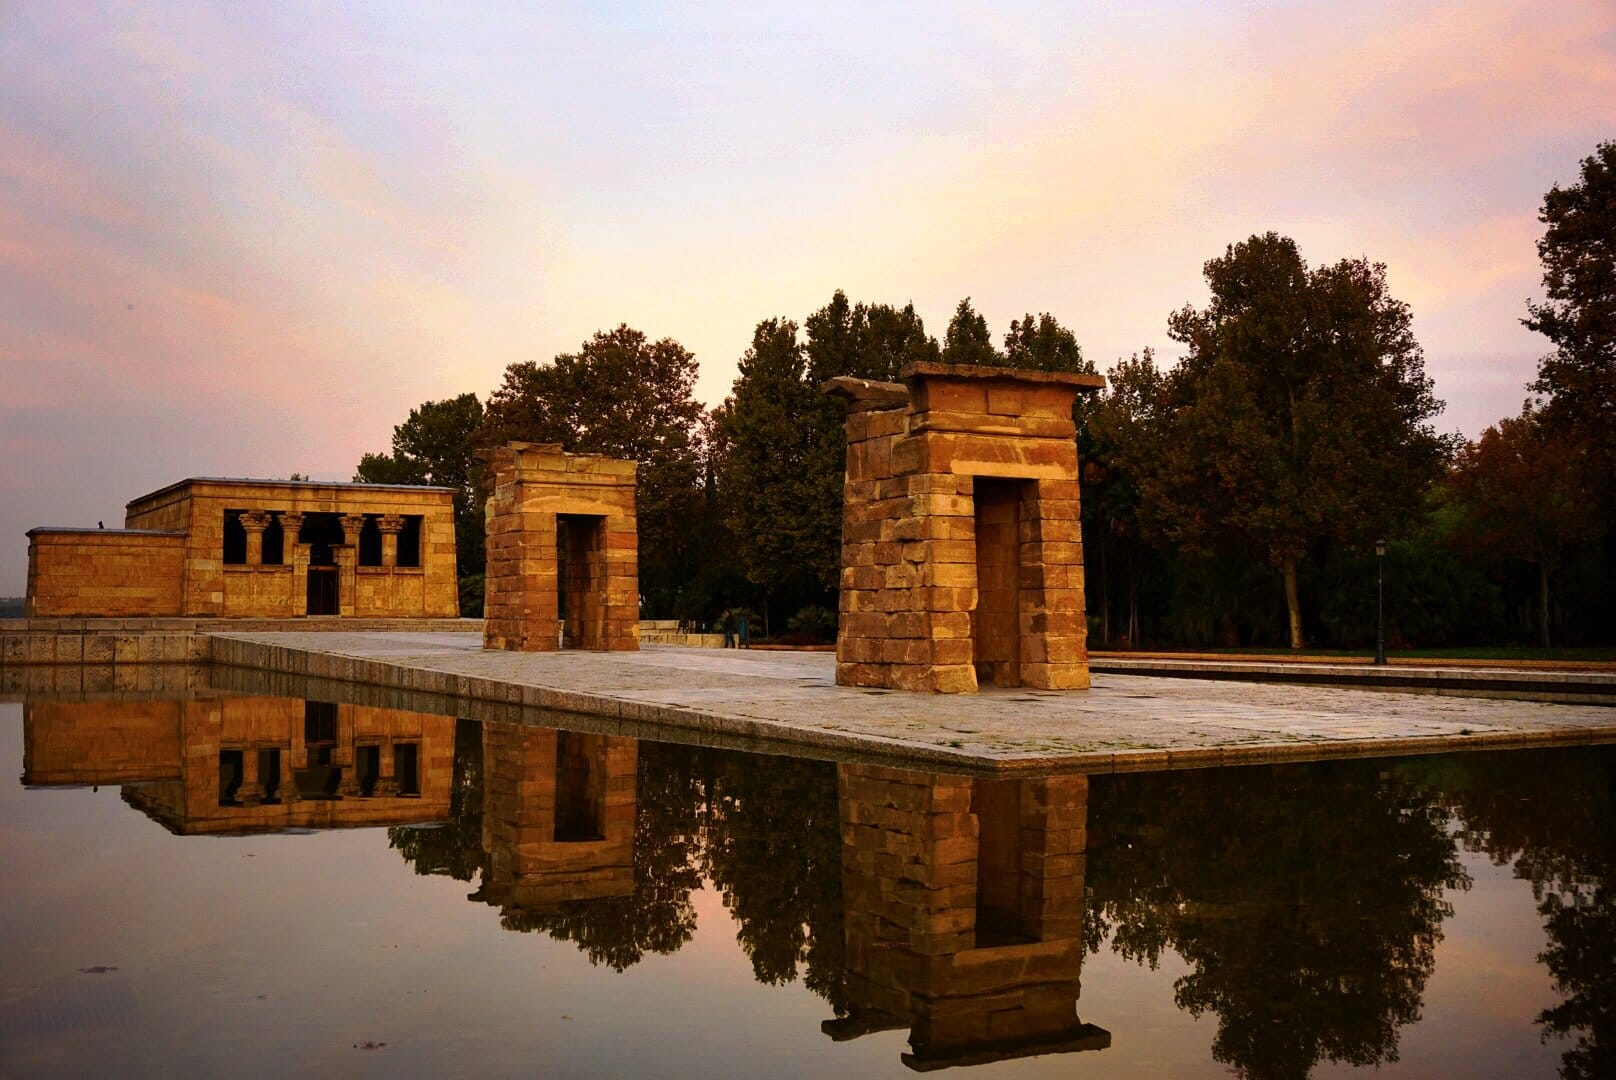 The Temple of Debod at Sunrise